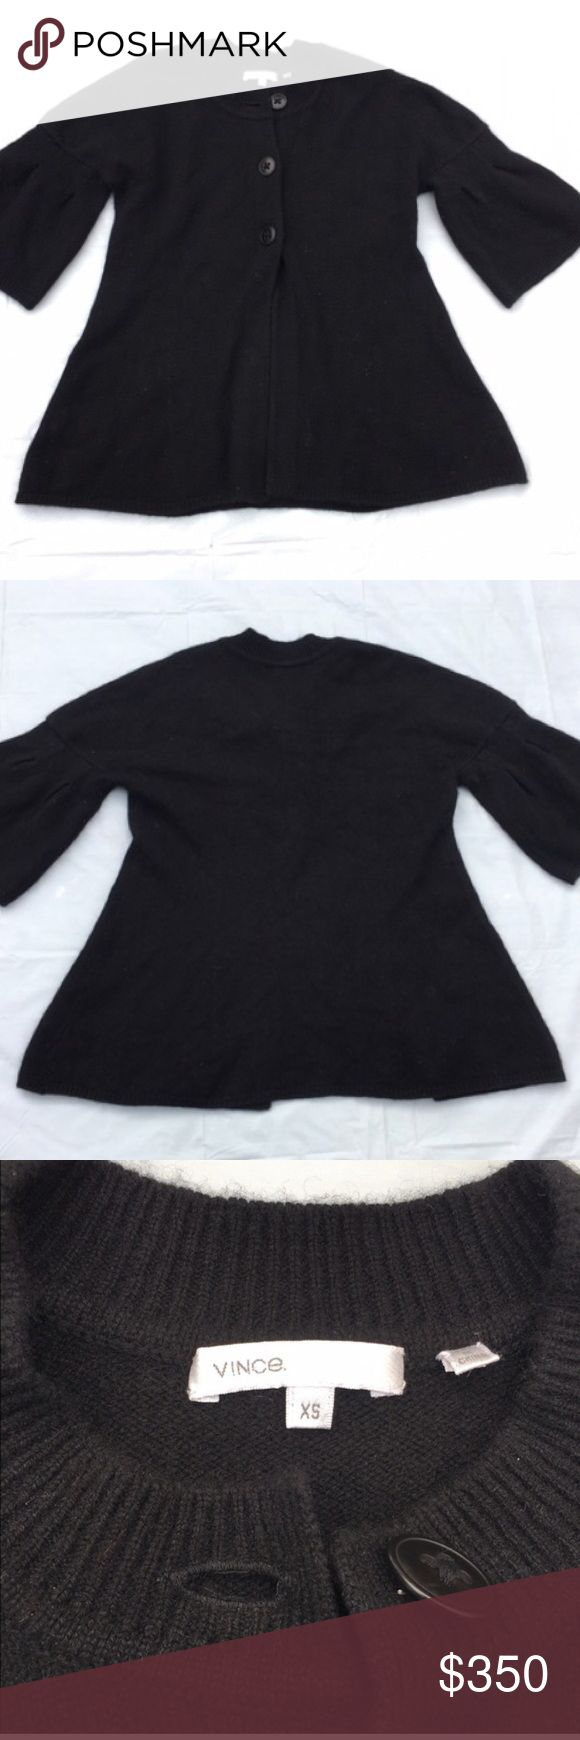 Vince black cashmere sweater SZ  XS. Vince black 100% cashmere sweater. Size XS. Excellent used condition. Half sleeves with bell shape. 3 button crew neck cardigan style. Falls to hips. A must have wardrobe staple! Vince Sweaters Cardigans